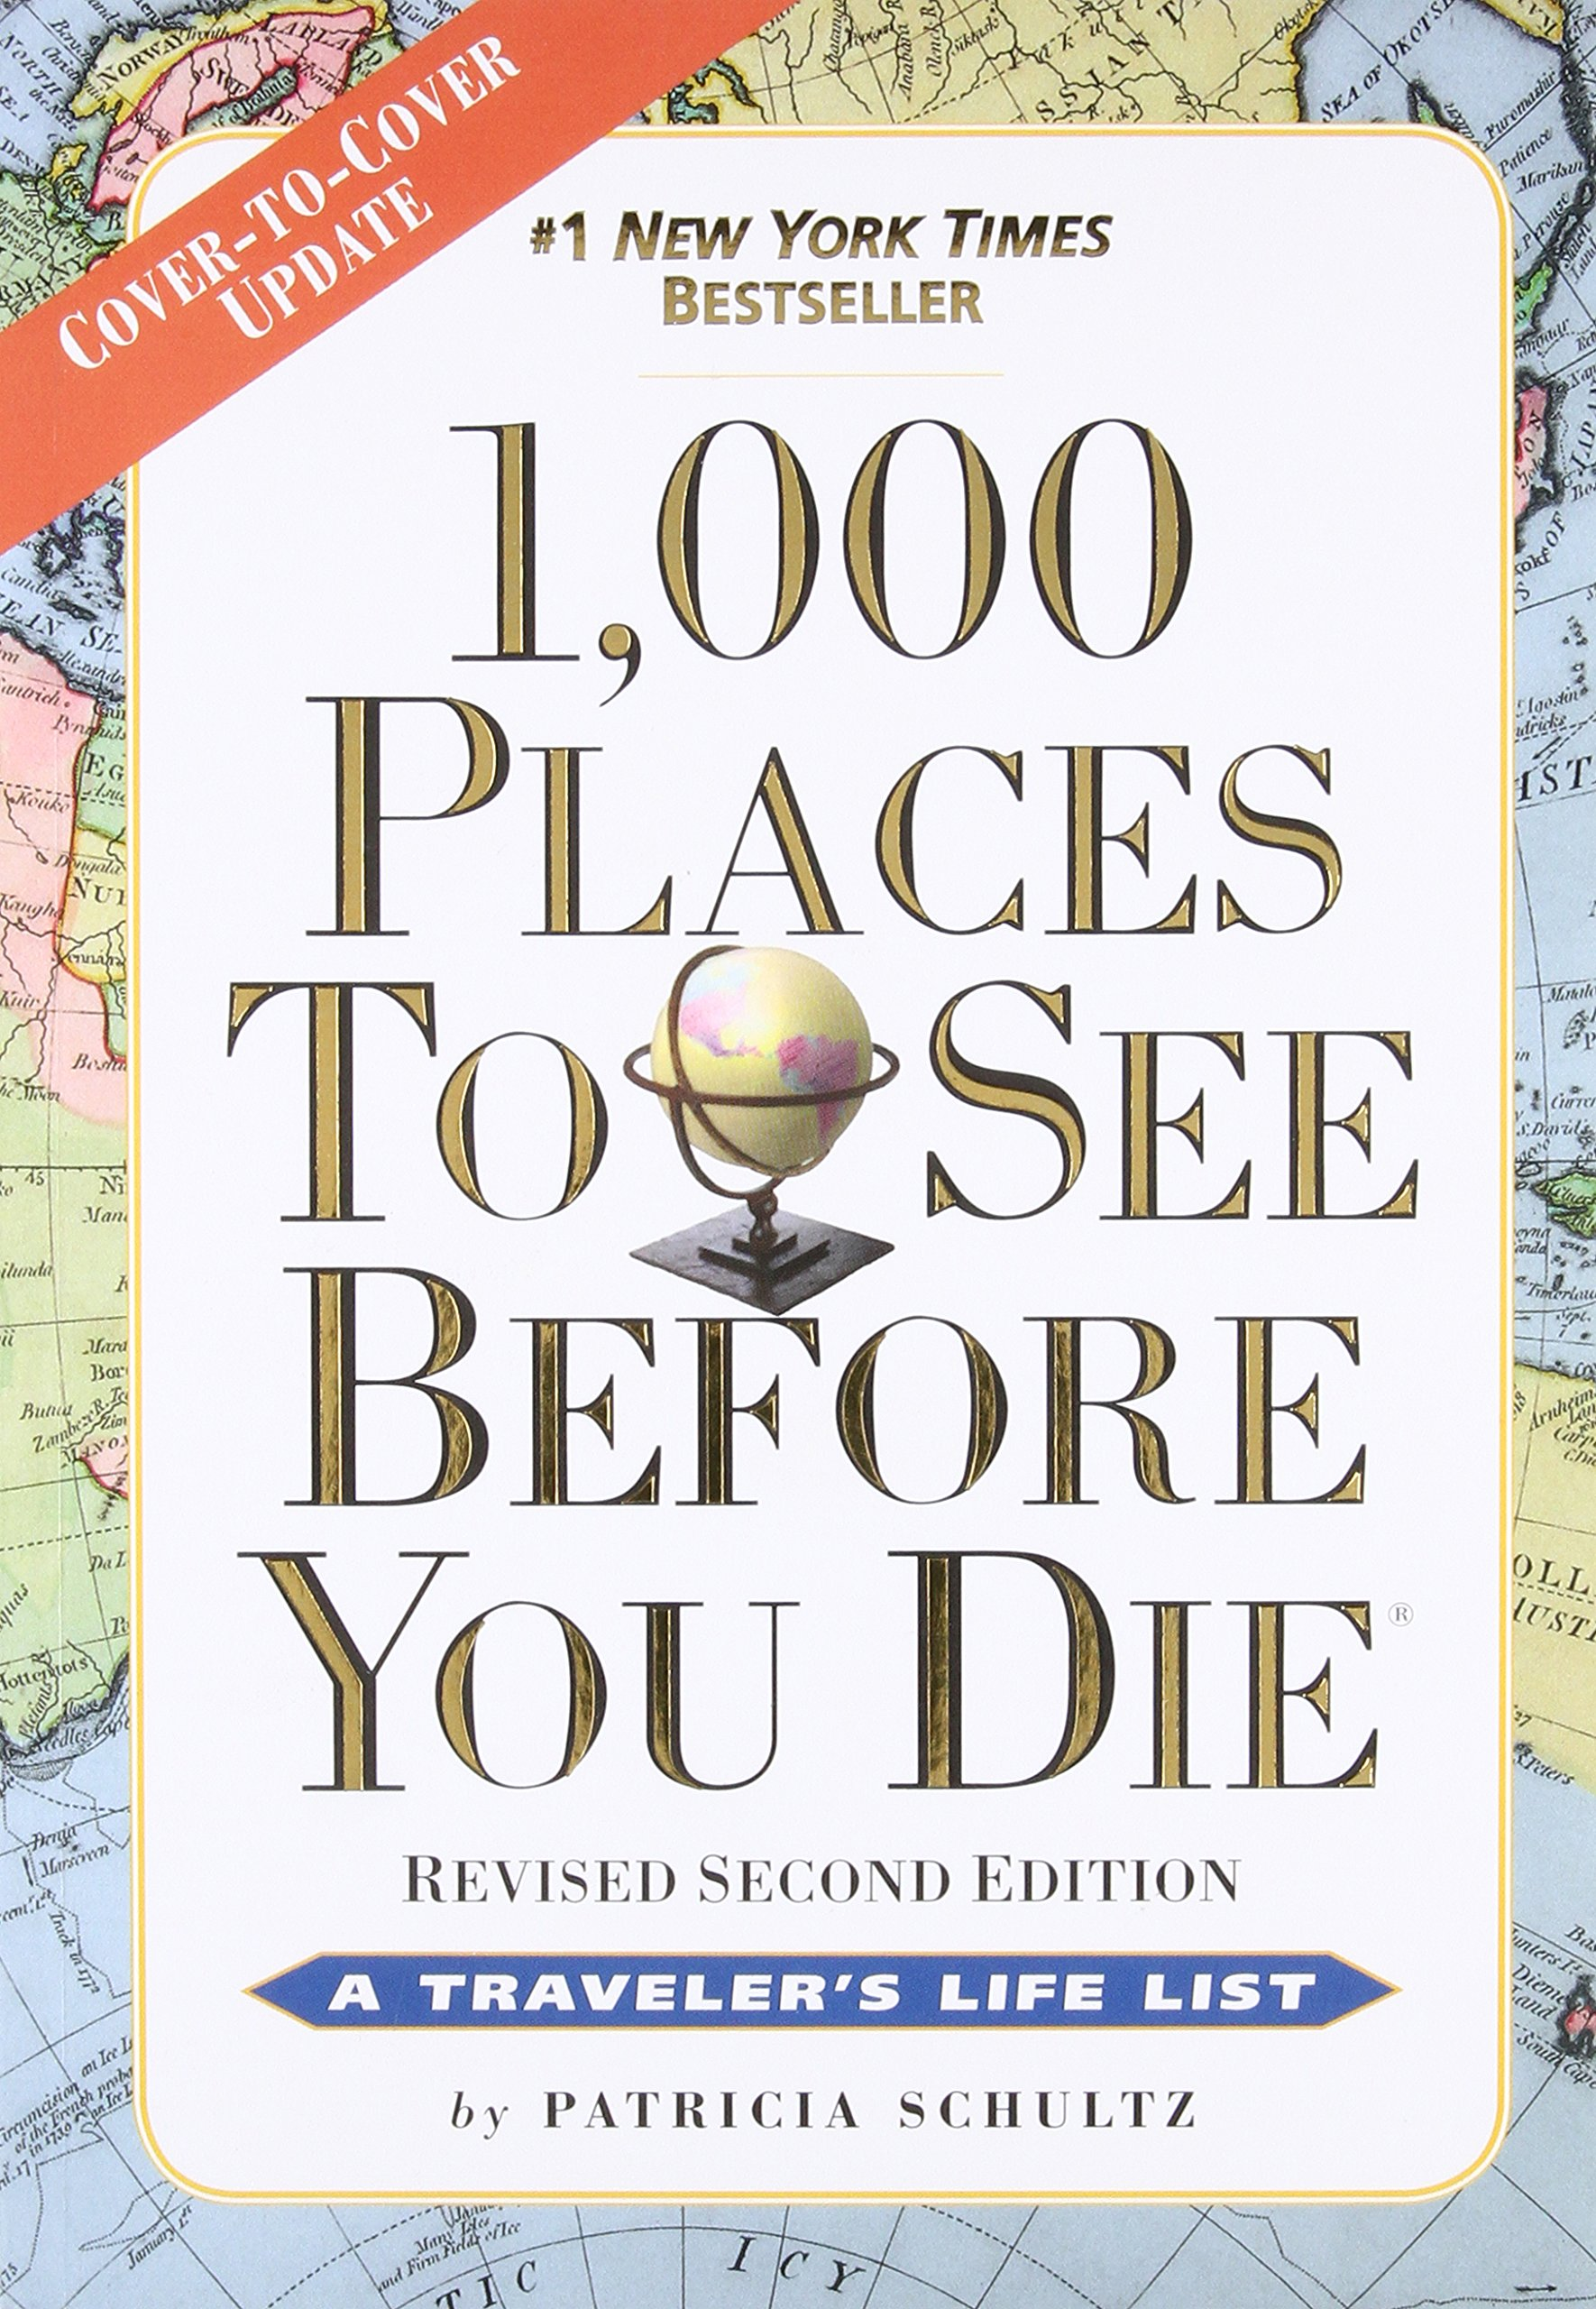 travel gift ideas graduation presents wanderlust 1000 places to see before you die book